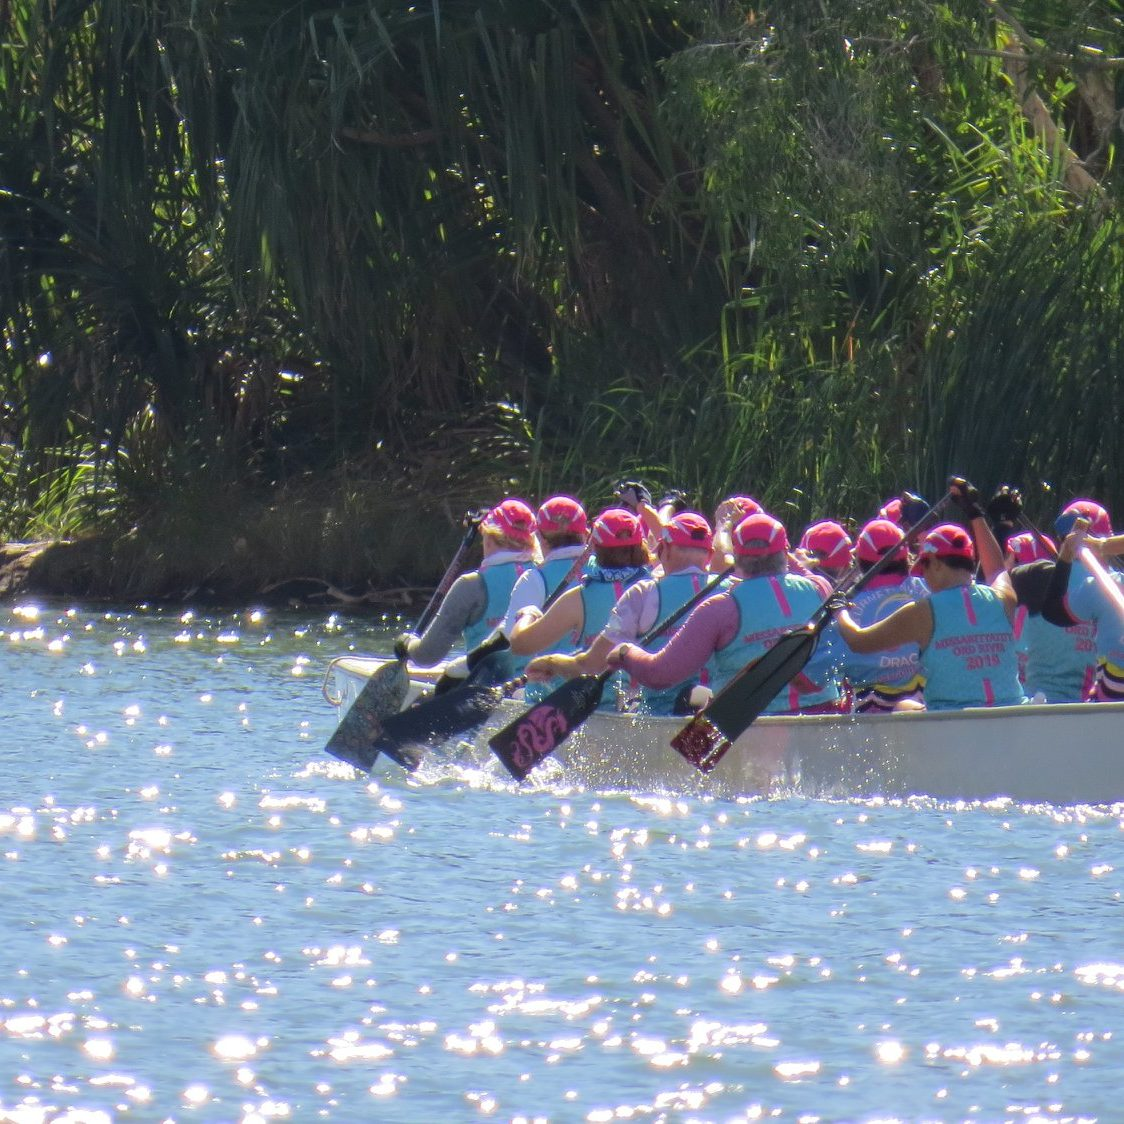 brisbane-breast-cancer-survivor-dragon-boat-team-ord-paddle-2019